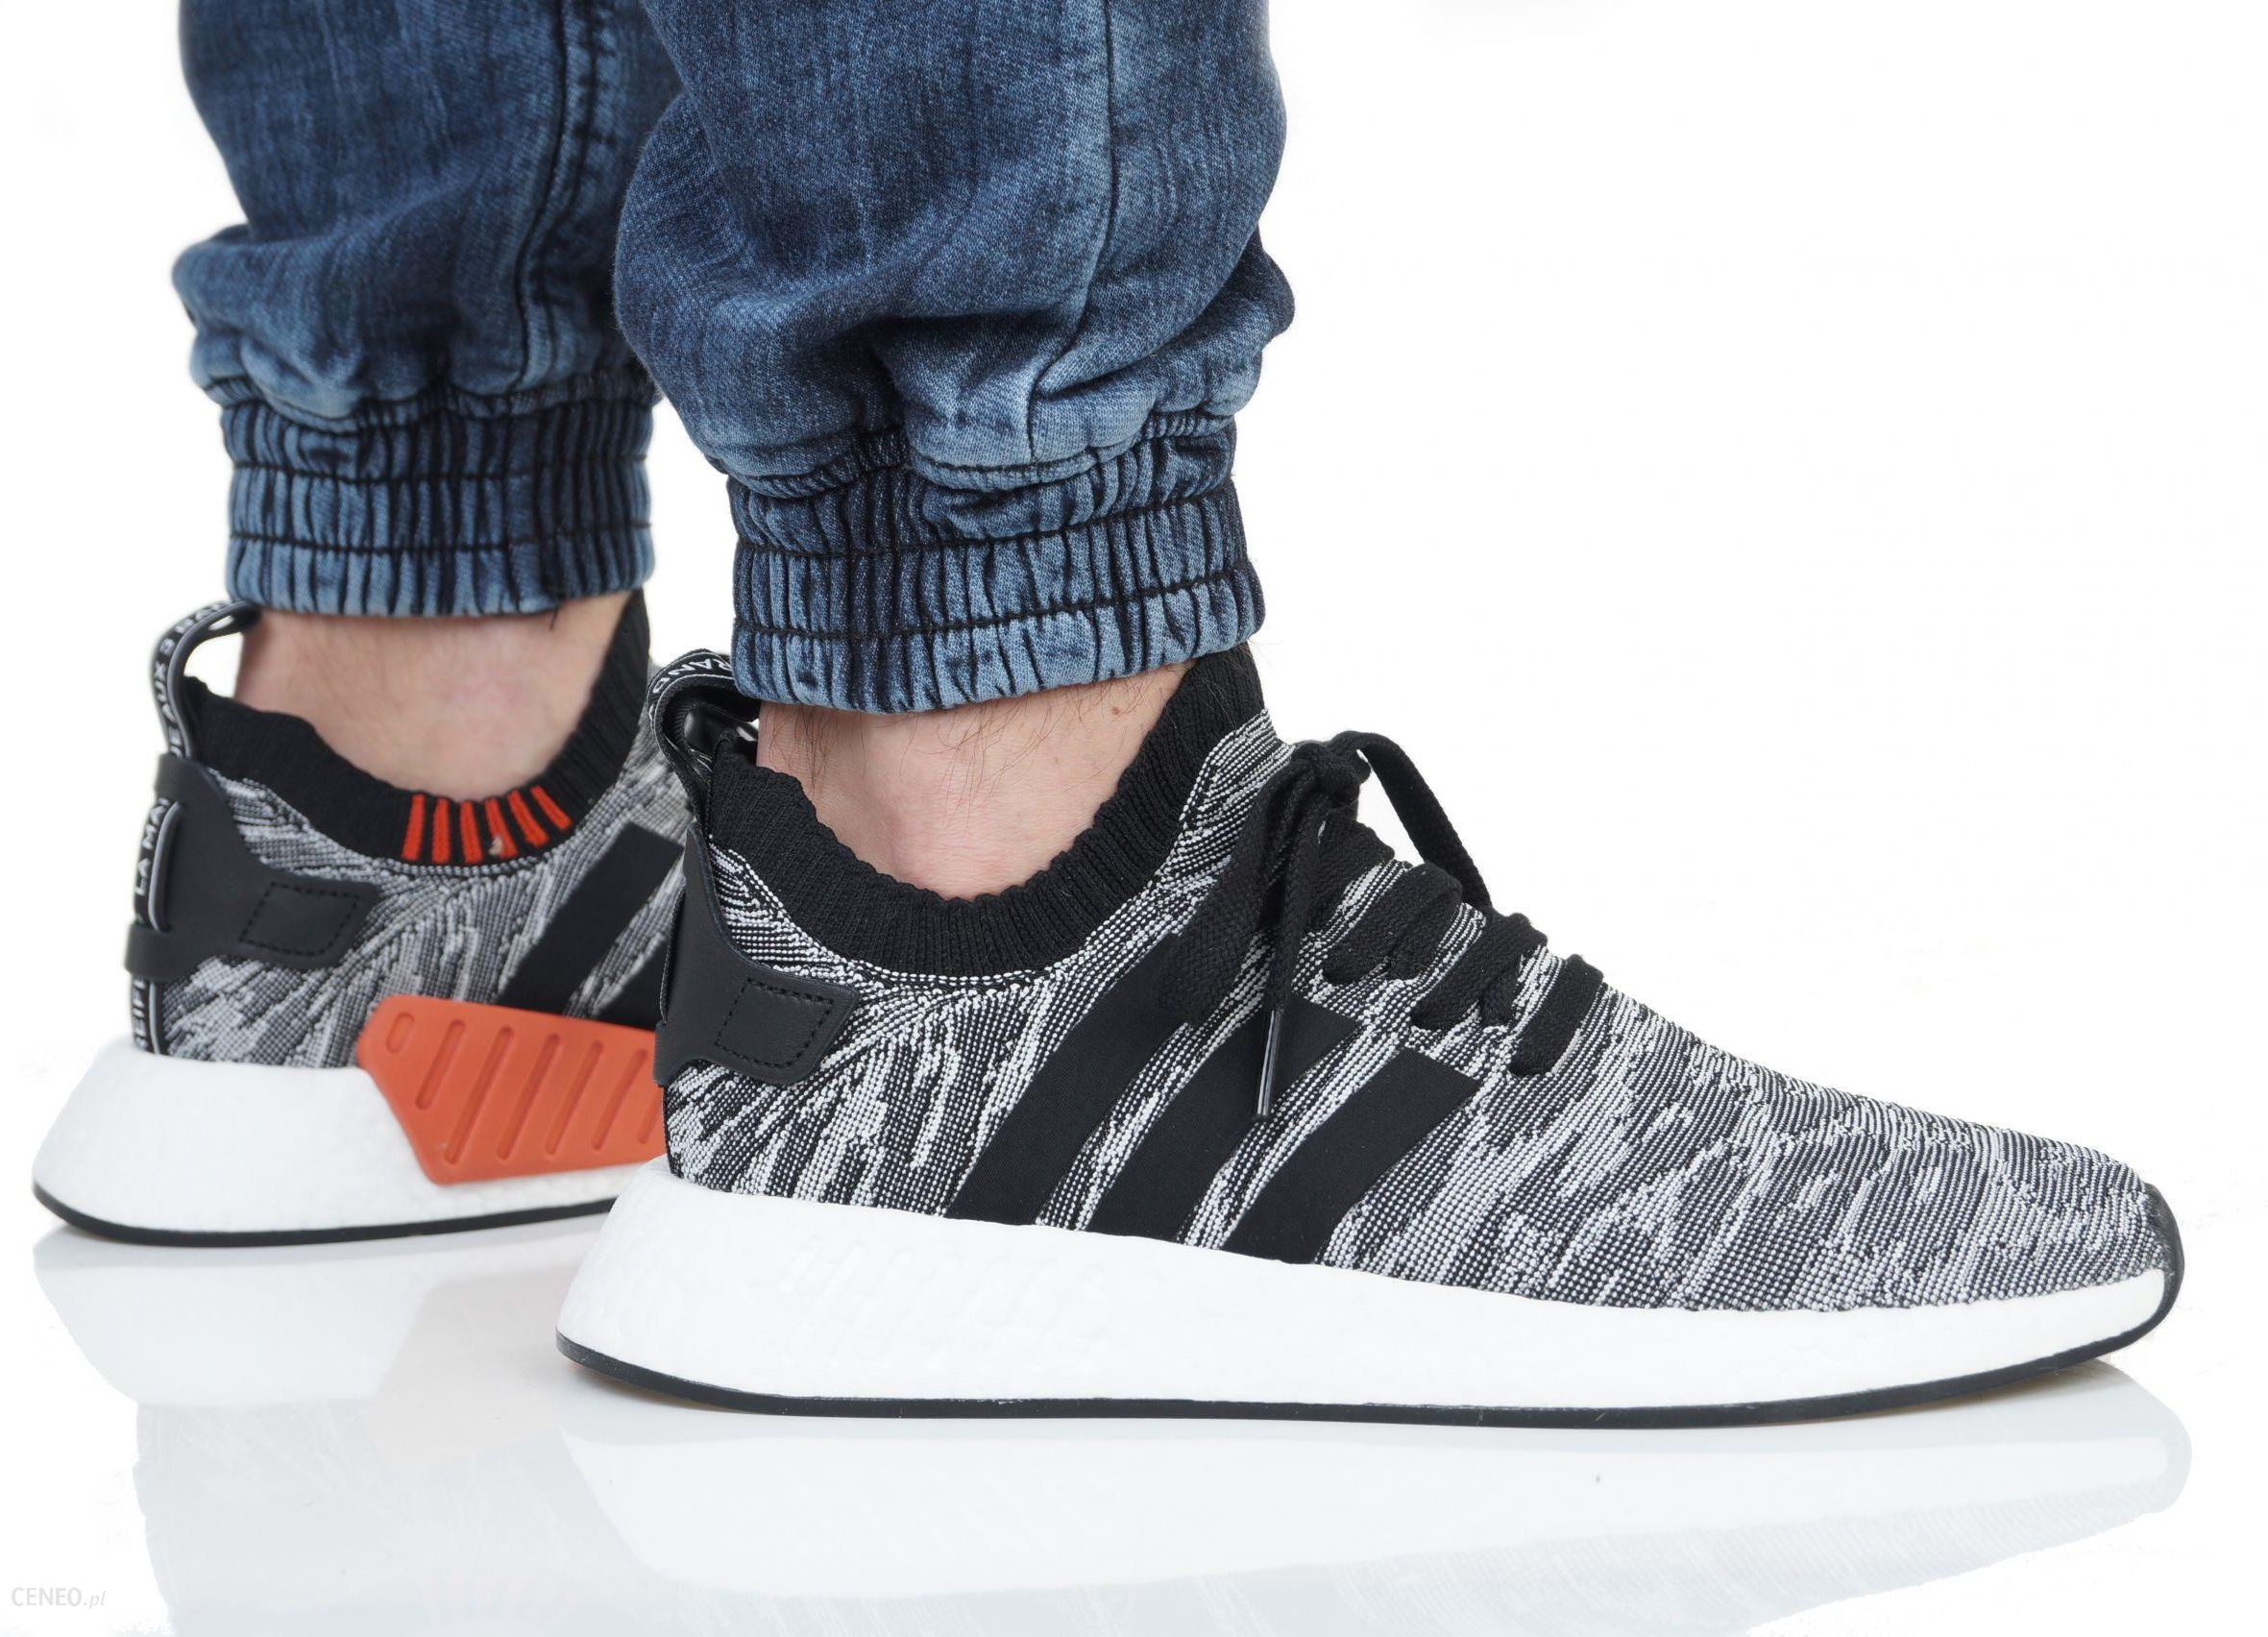 online store a049f 89837 BUTY ADIDAS NMD_R2 PK BY9409 - Ceny i opinie - Ceneo.pl